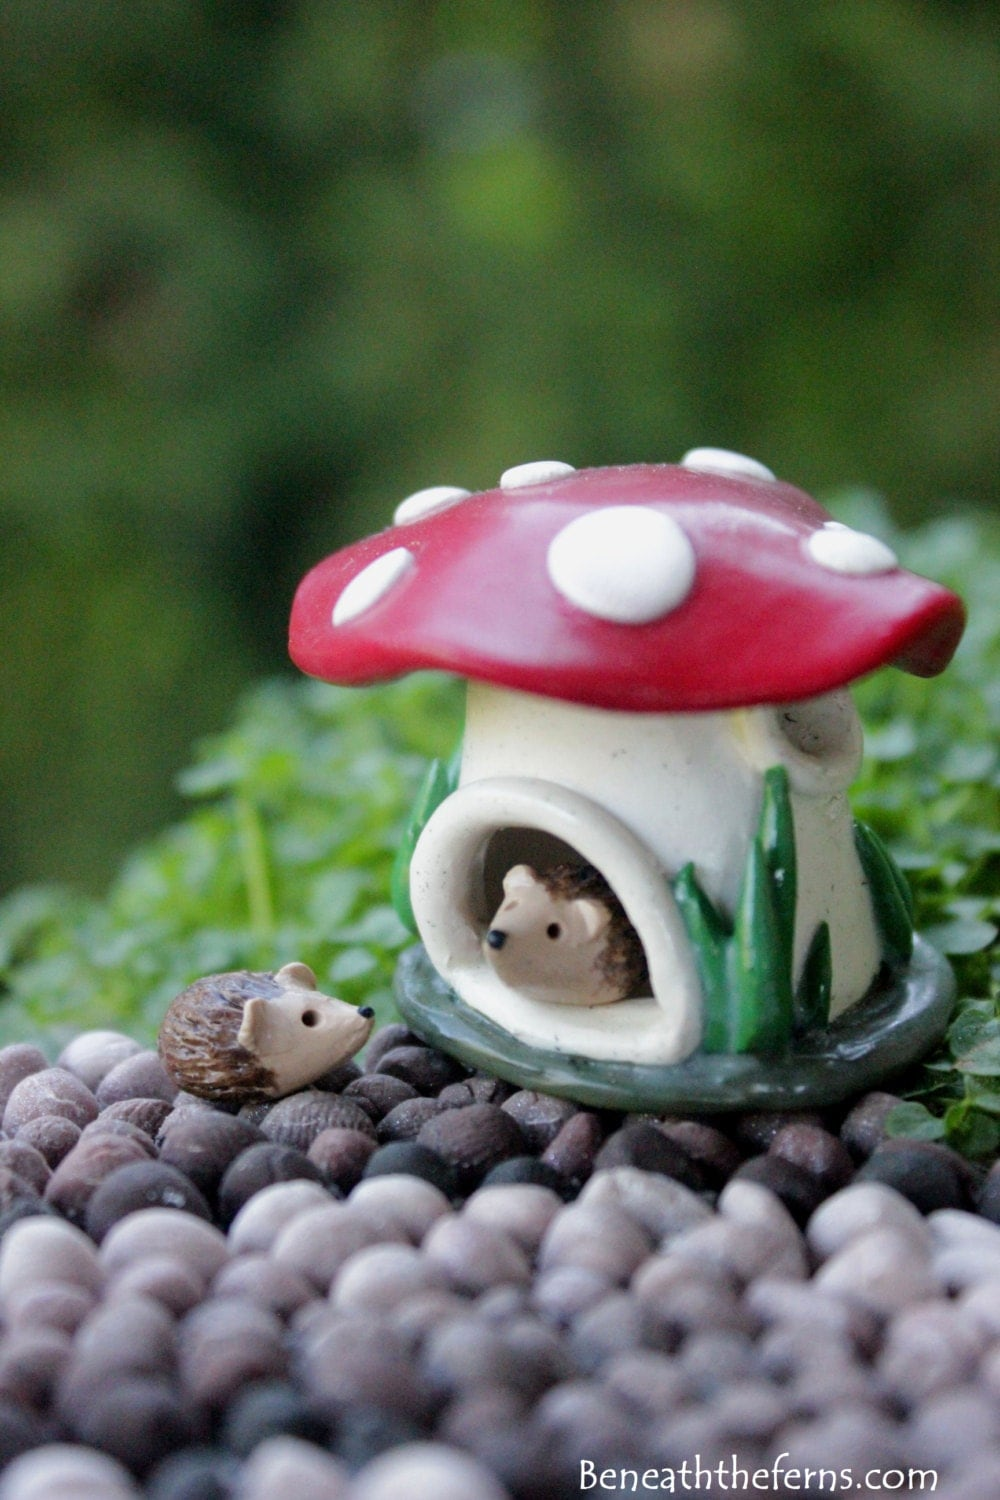 Gnome Garden: Miniature Mushroom House Tiny Fairy Garden Accessory Gnome